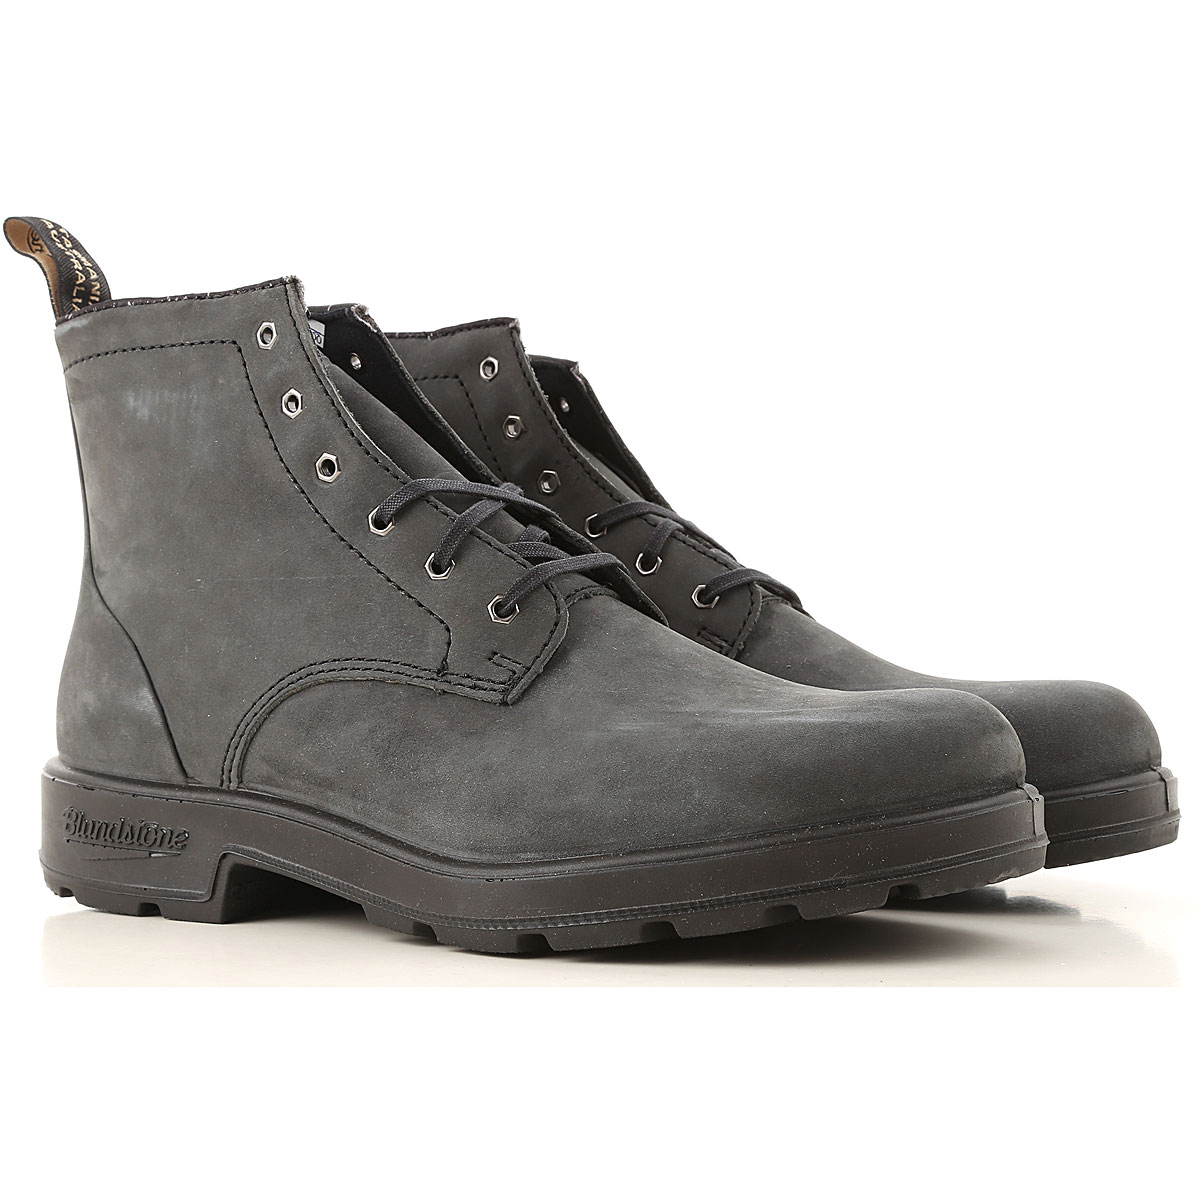 Blundstone Boots for Men, Booties On Sale, blackboard, Leather, 2019, 10 10.5 11 7.5 8.5 9 9.5